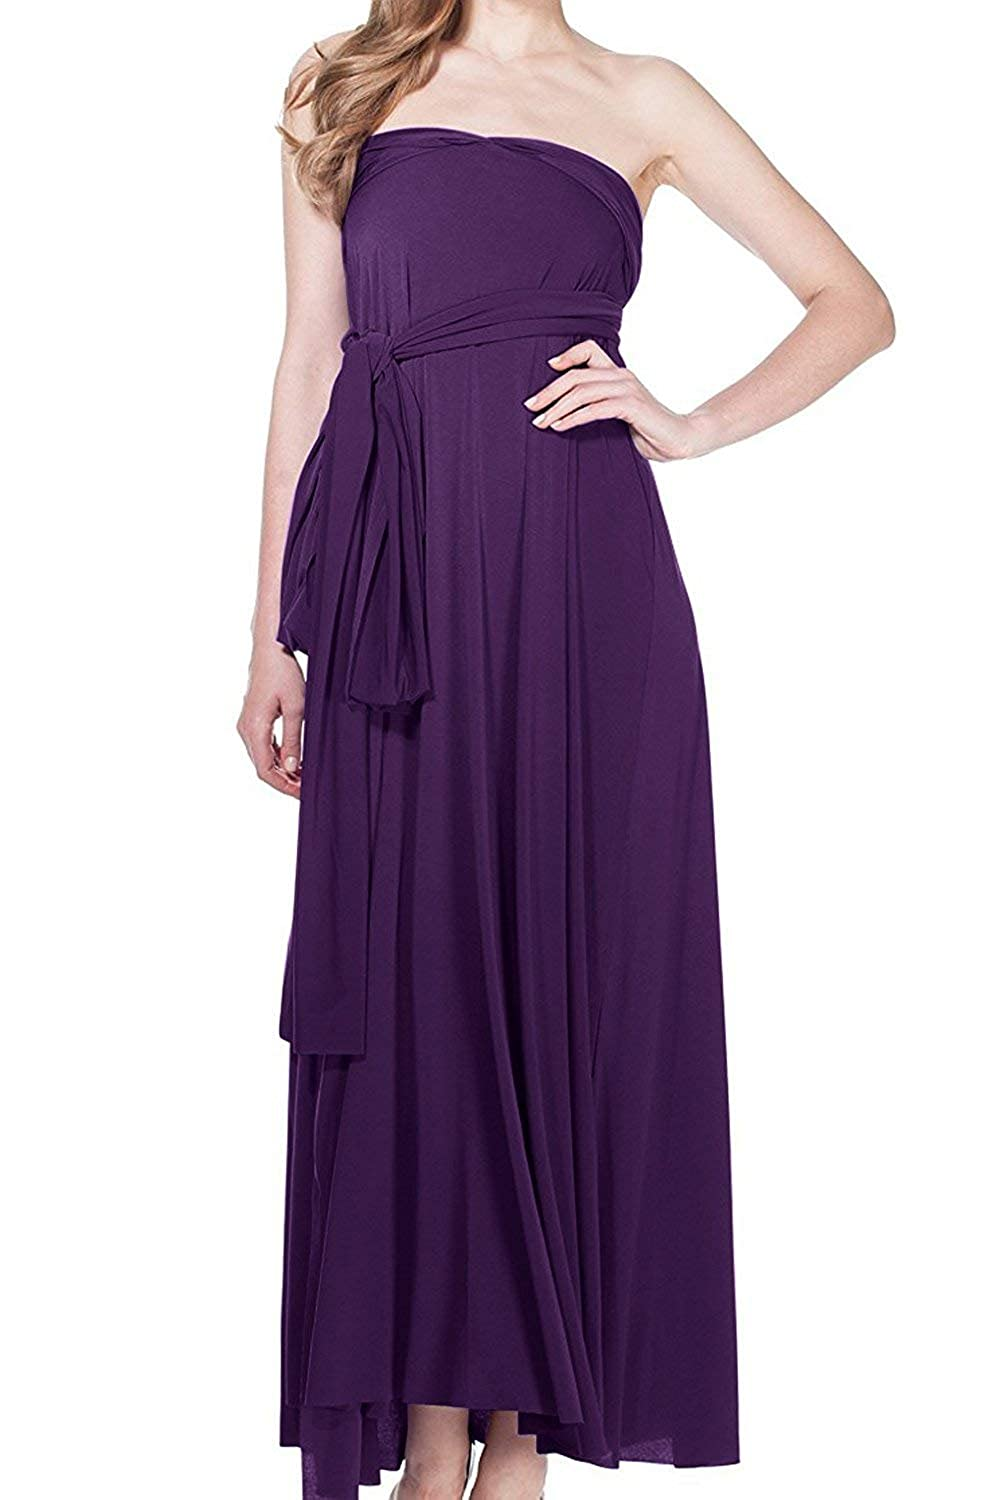 Women Elegant Bridesmaid Multiway Wrap Convertible Dress V Neck Off Shoulder Evening Party Maxi Long Cocktail Dress Solid Color Empire Infinity Bandage Wrap Formal Prom Gown Maternity Wear XS XL